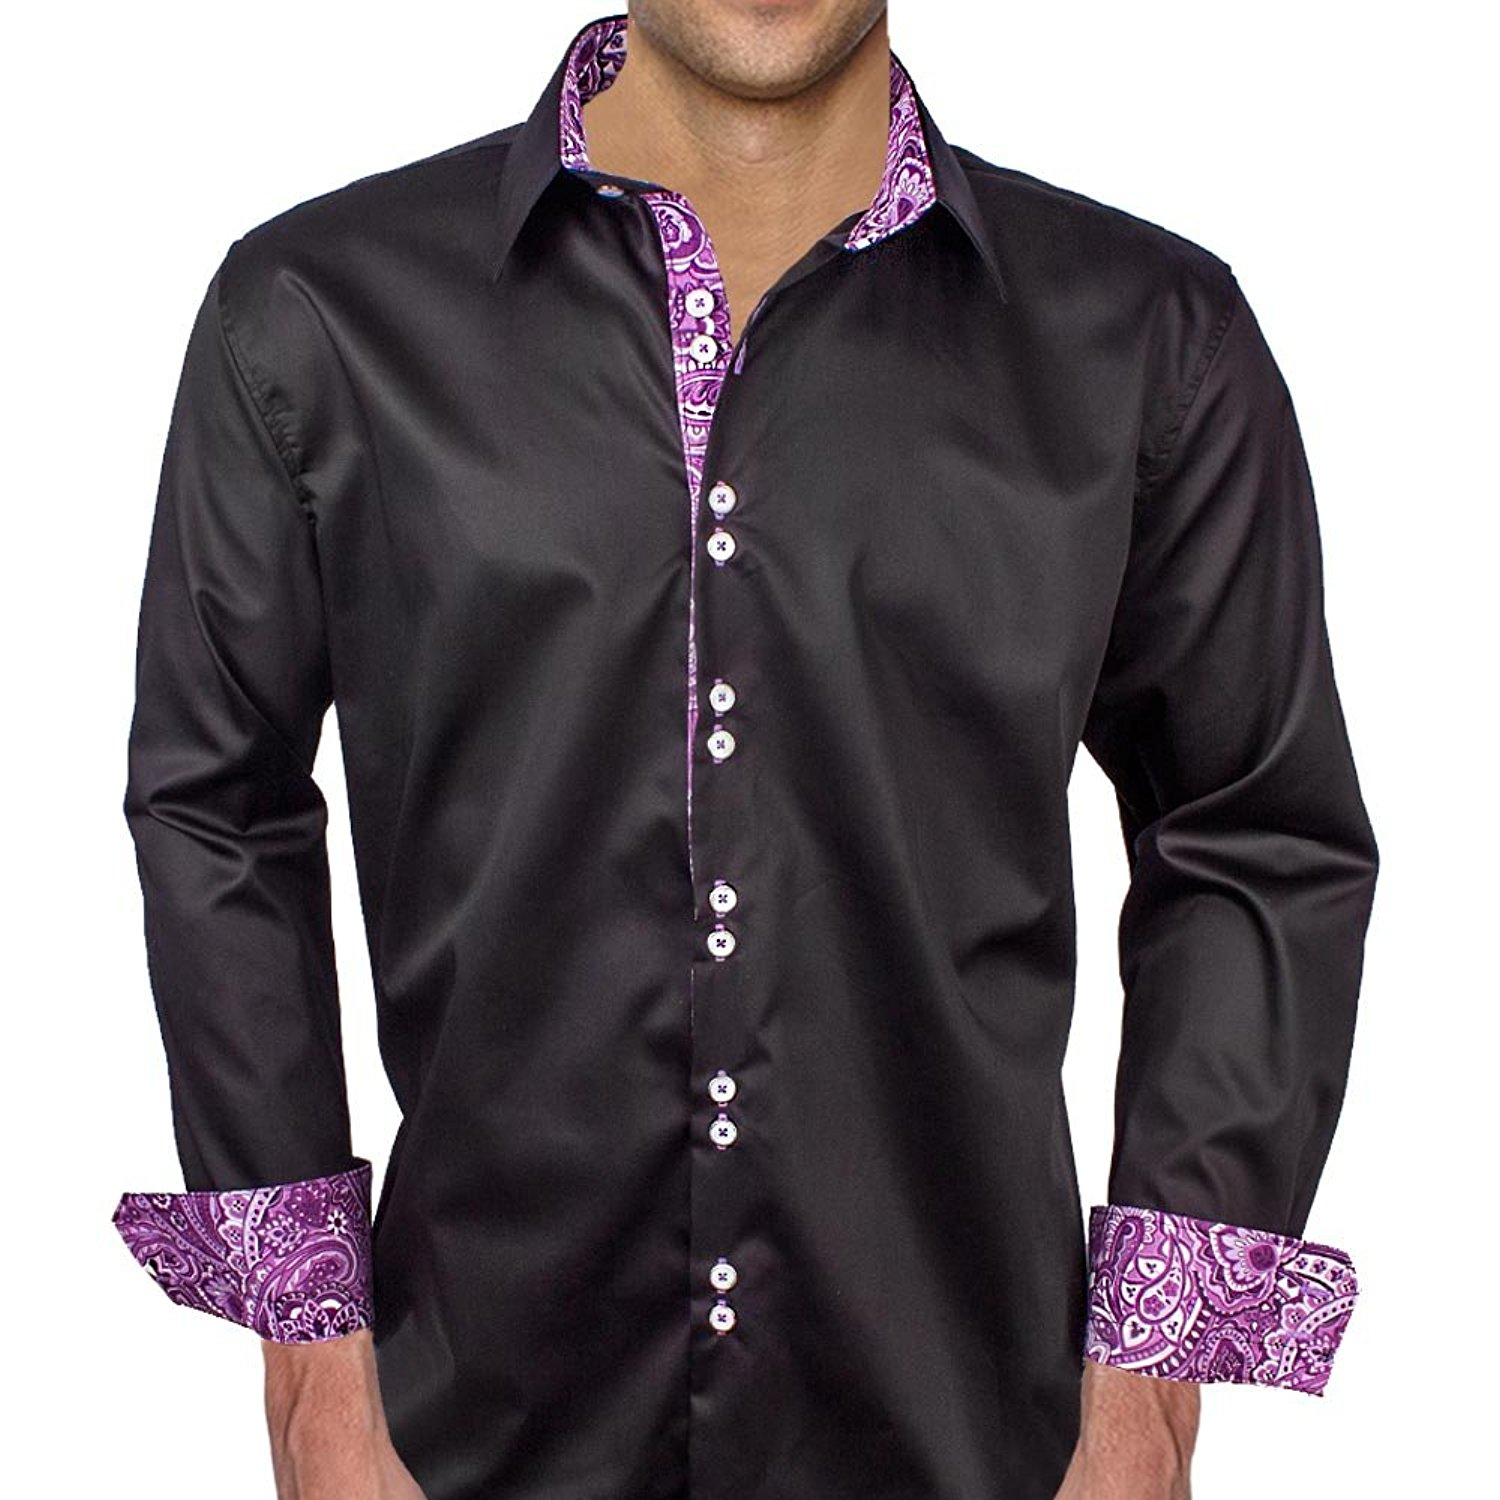 Buy Purple With Black Paisley Designer Dress Shirts Made In Usa In